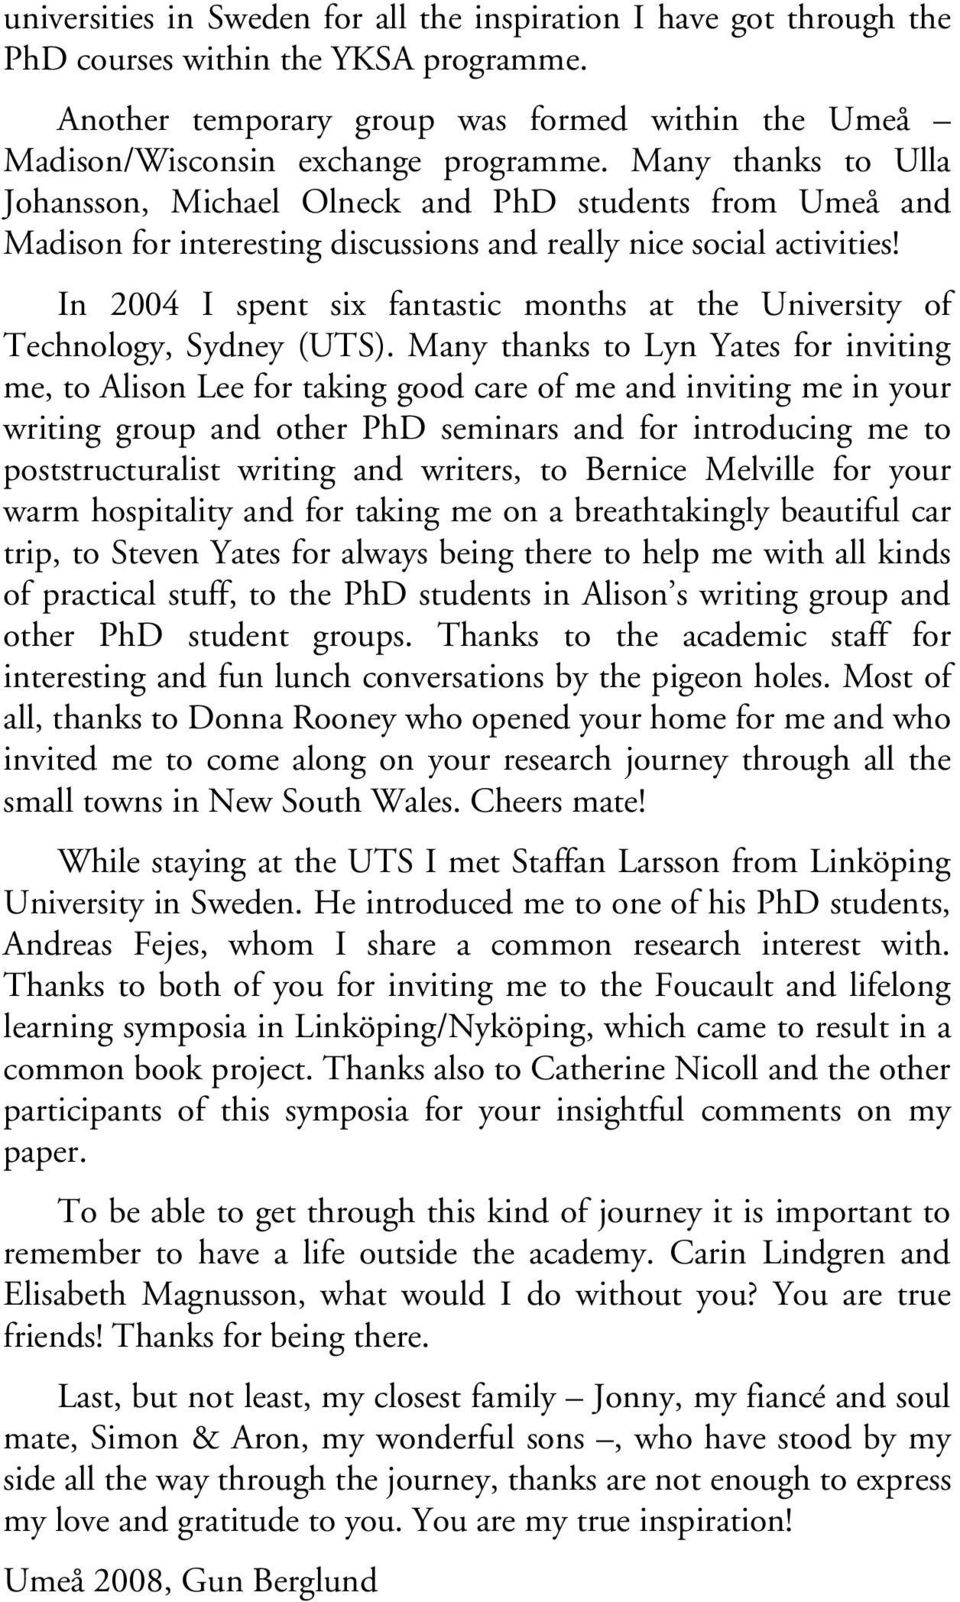 In 2004 I spent six fantastic months at the University of Technology, Sydney (UTS).